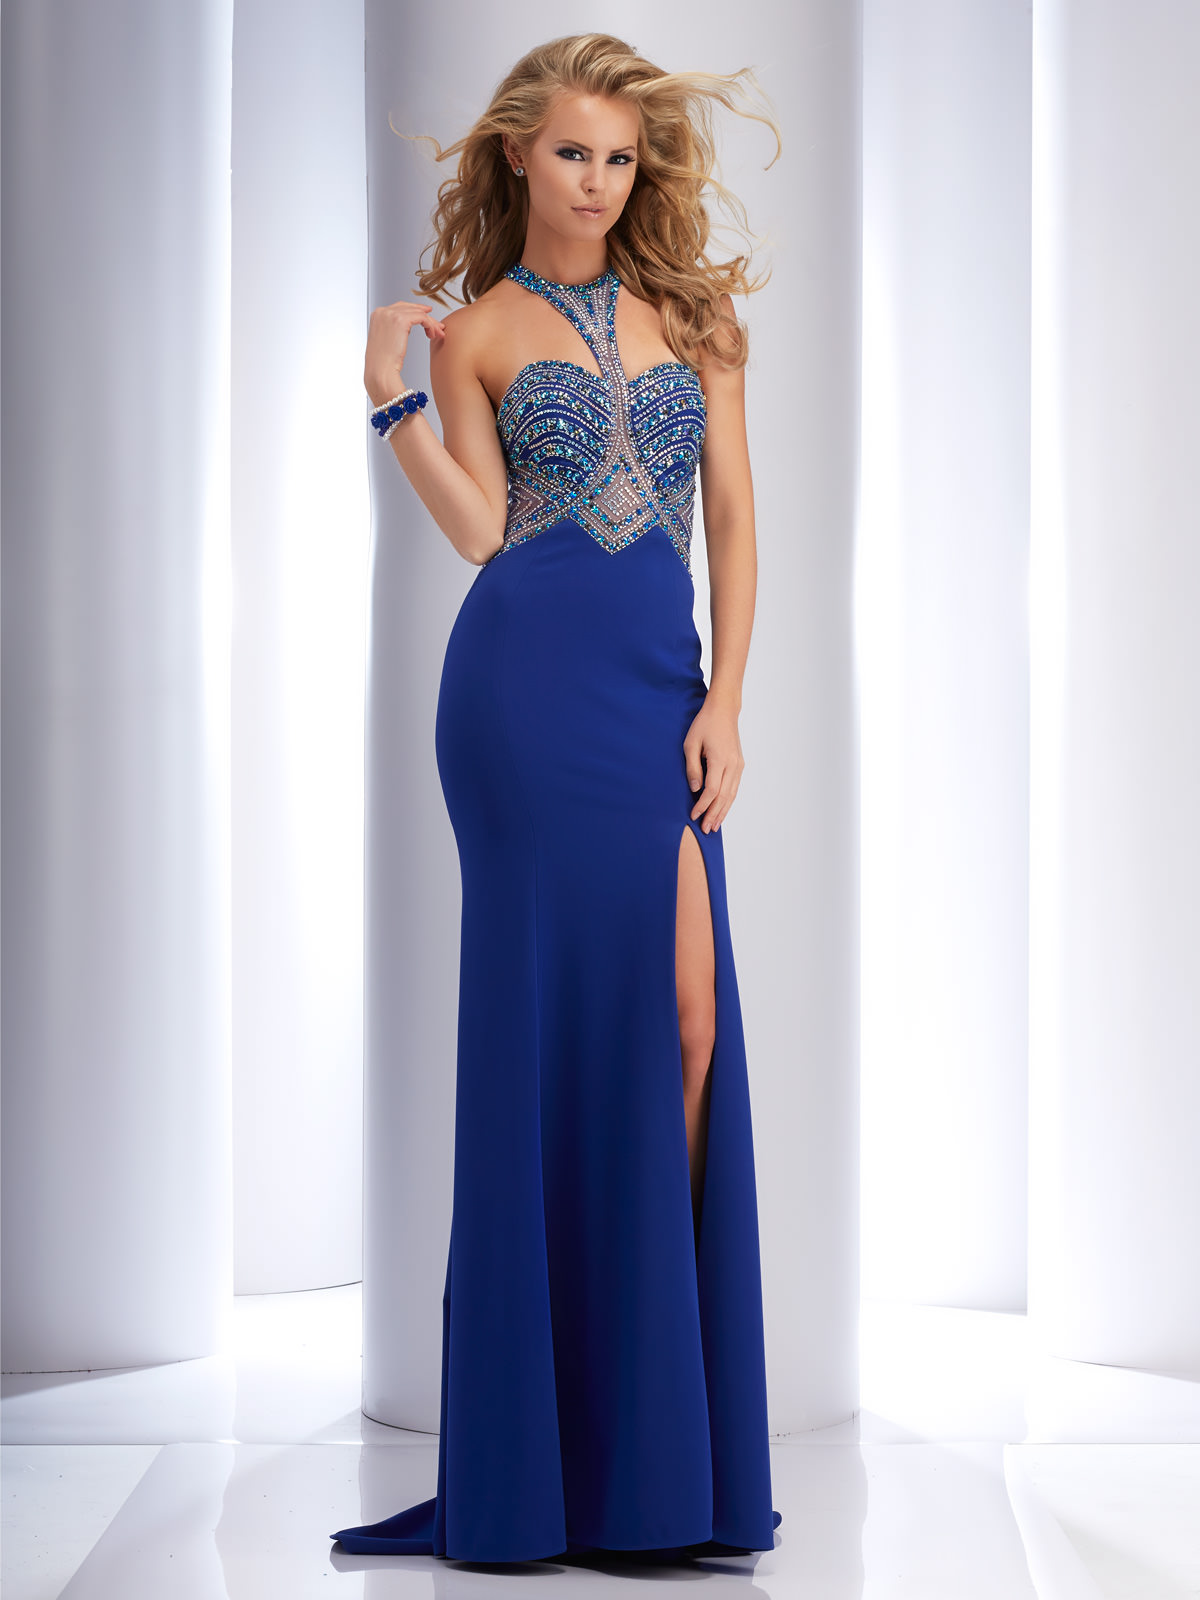 Clarisse 2795 Prom Dress | Promgirl.net